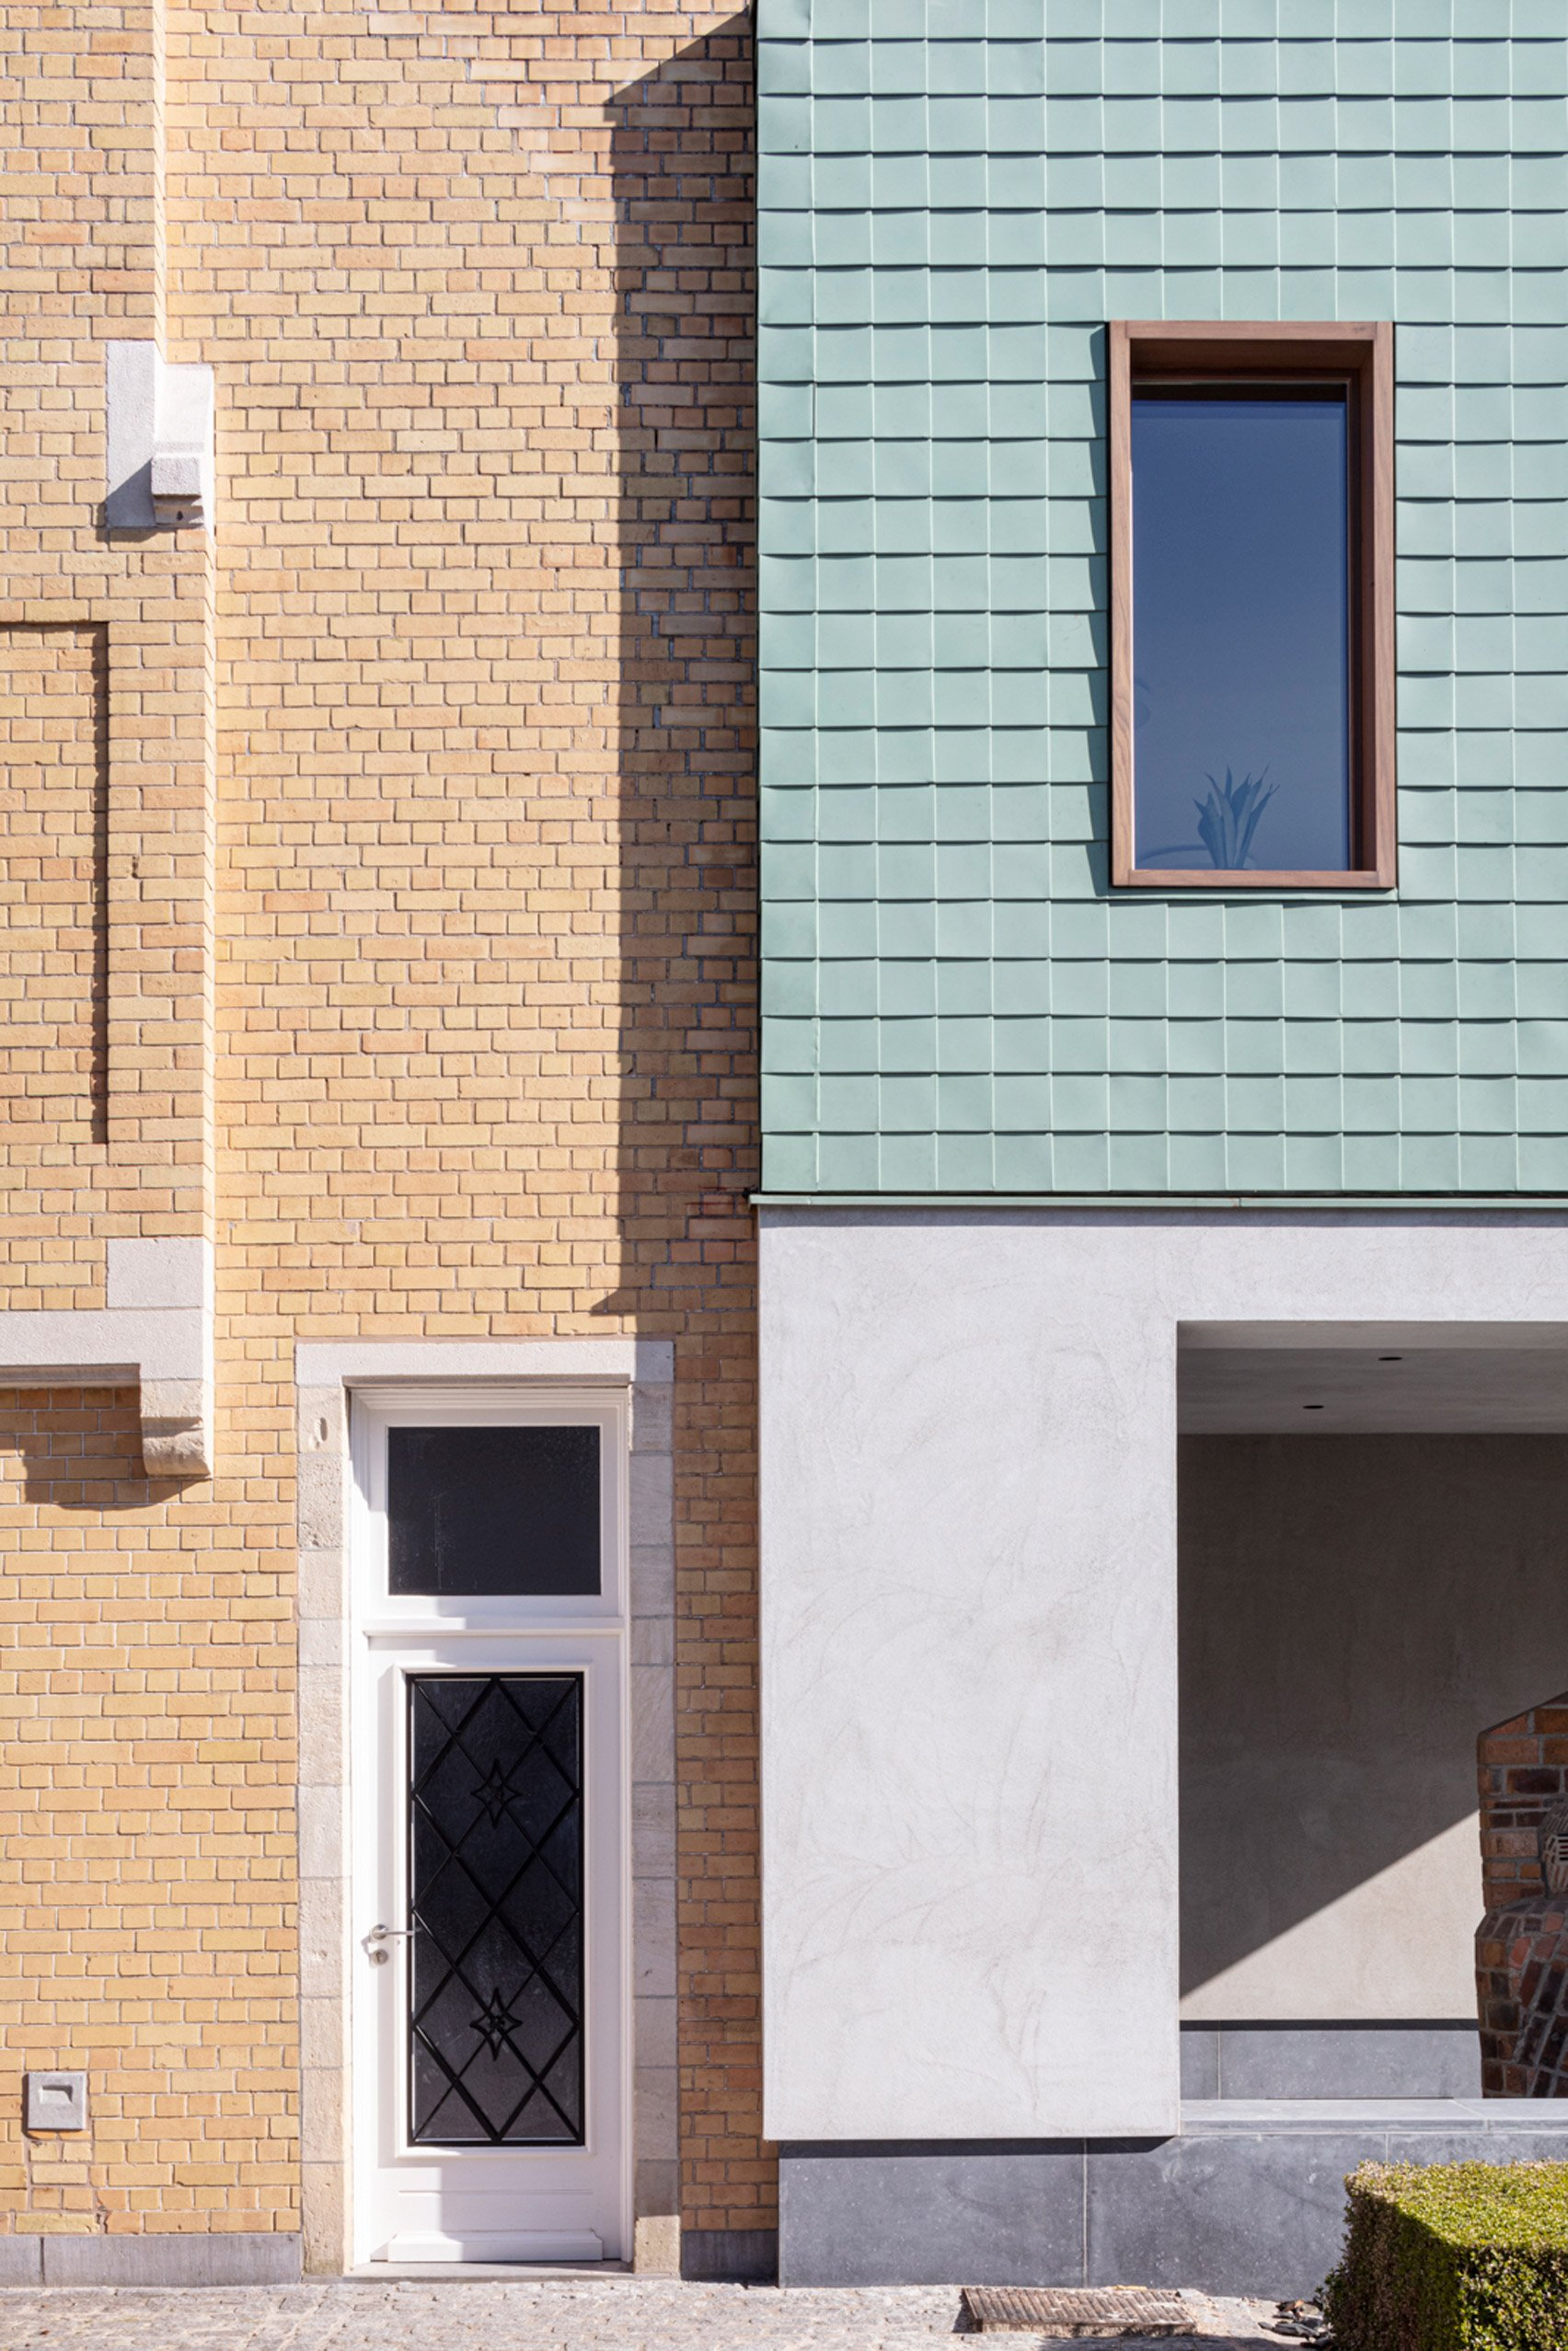 Wood windows are dotted between the cladding